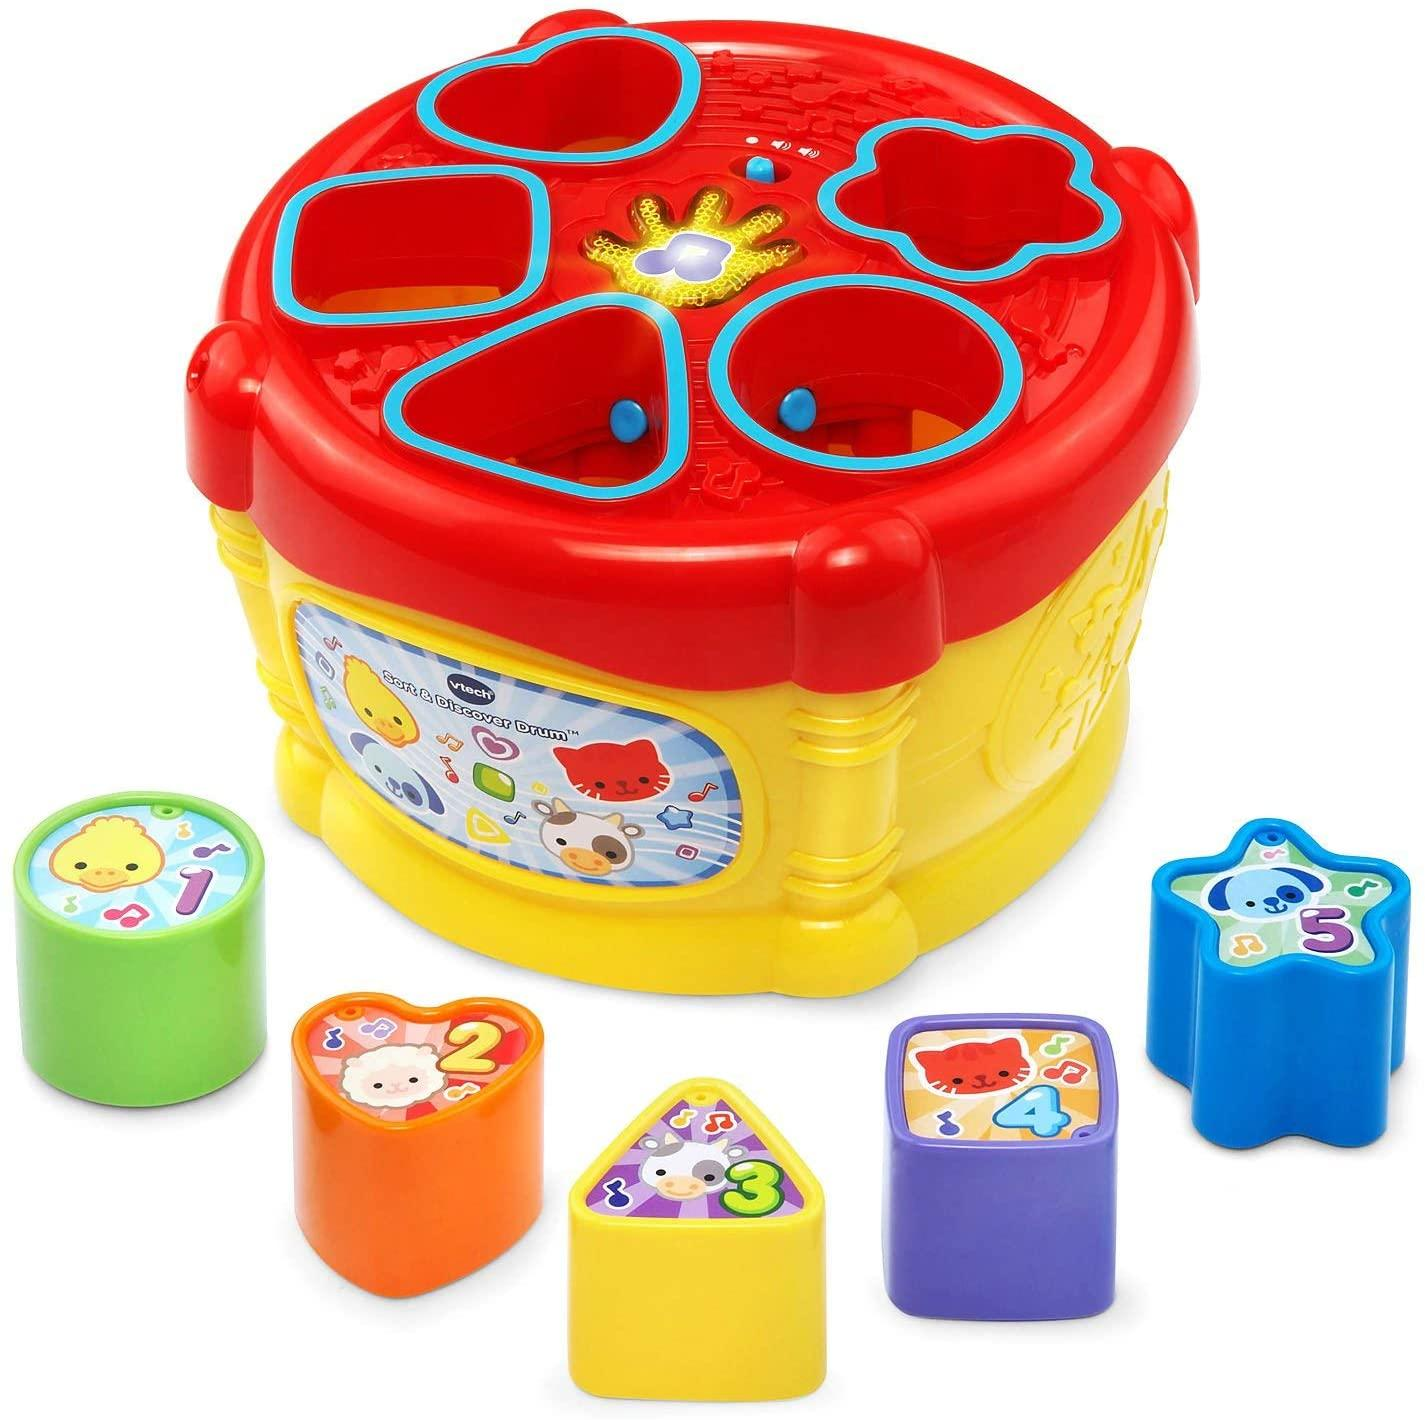 Vtech Sort And Discover Drum Toymaster Ballina